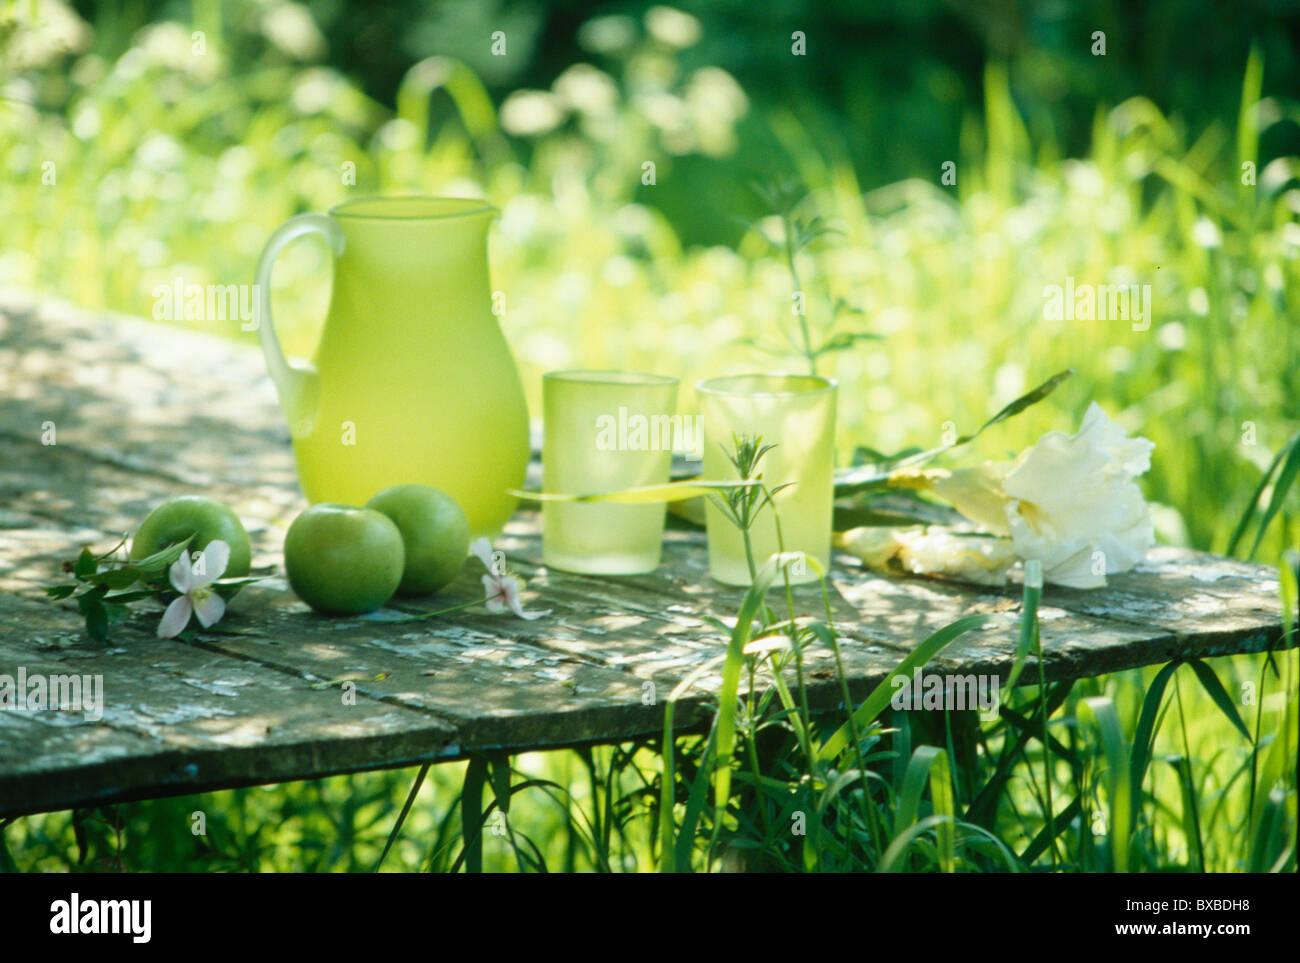 Still-Life of lime-green opaque glass jug and glasses with green apples on old rustic wooden garden table - Stock Image